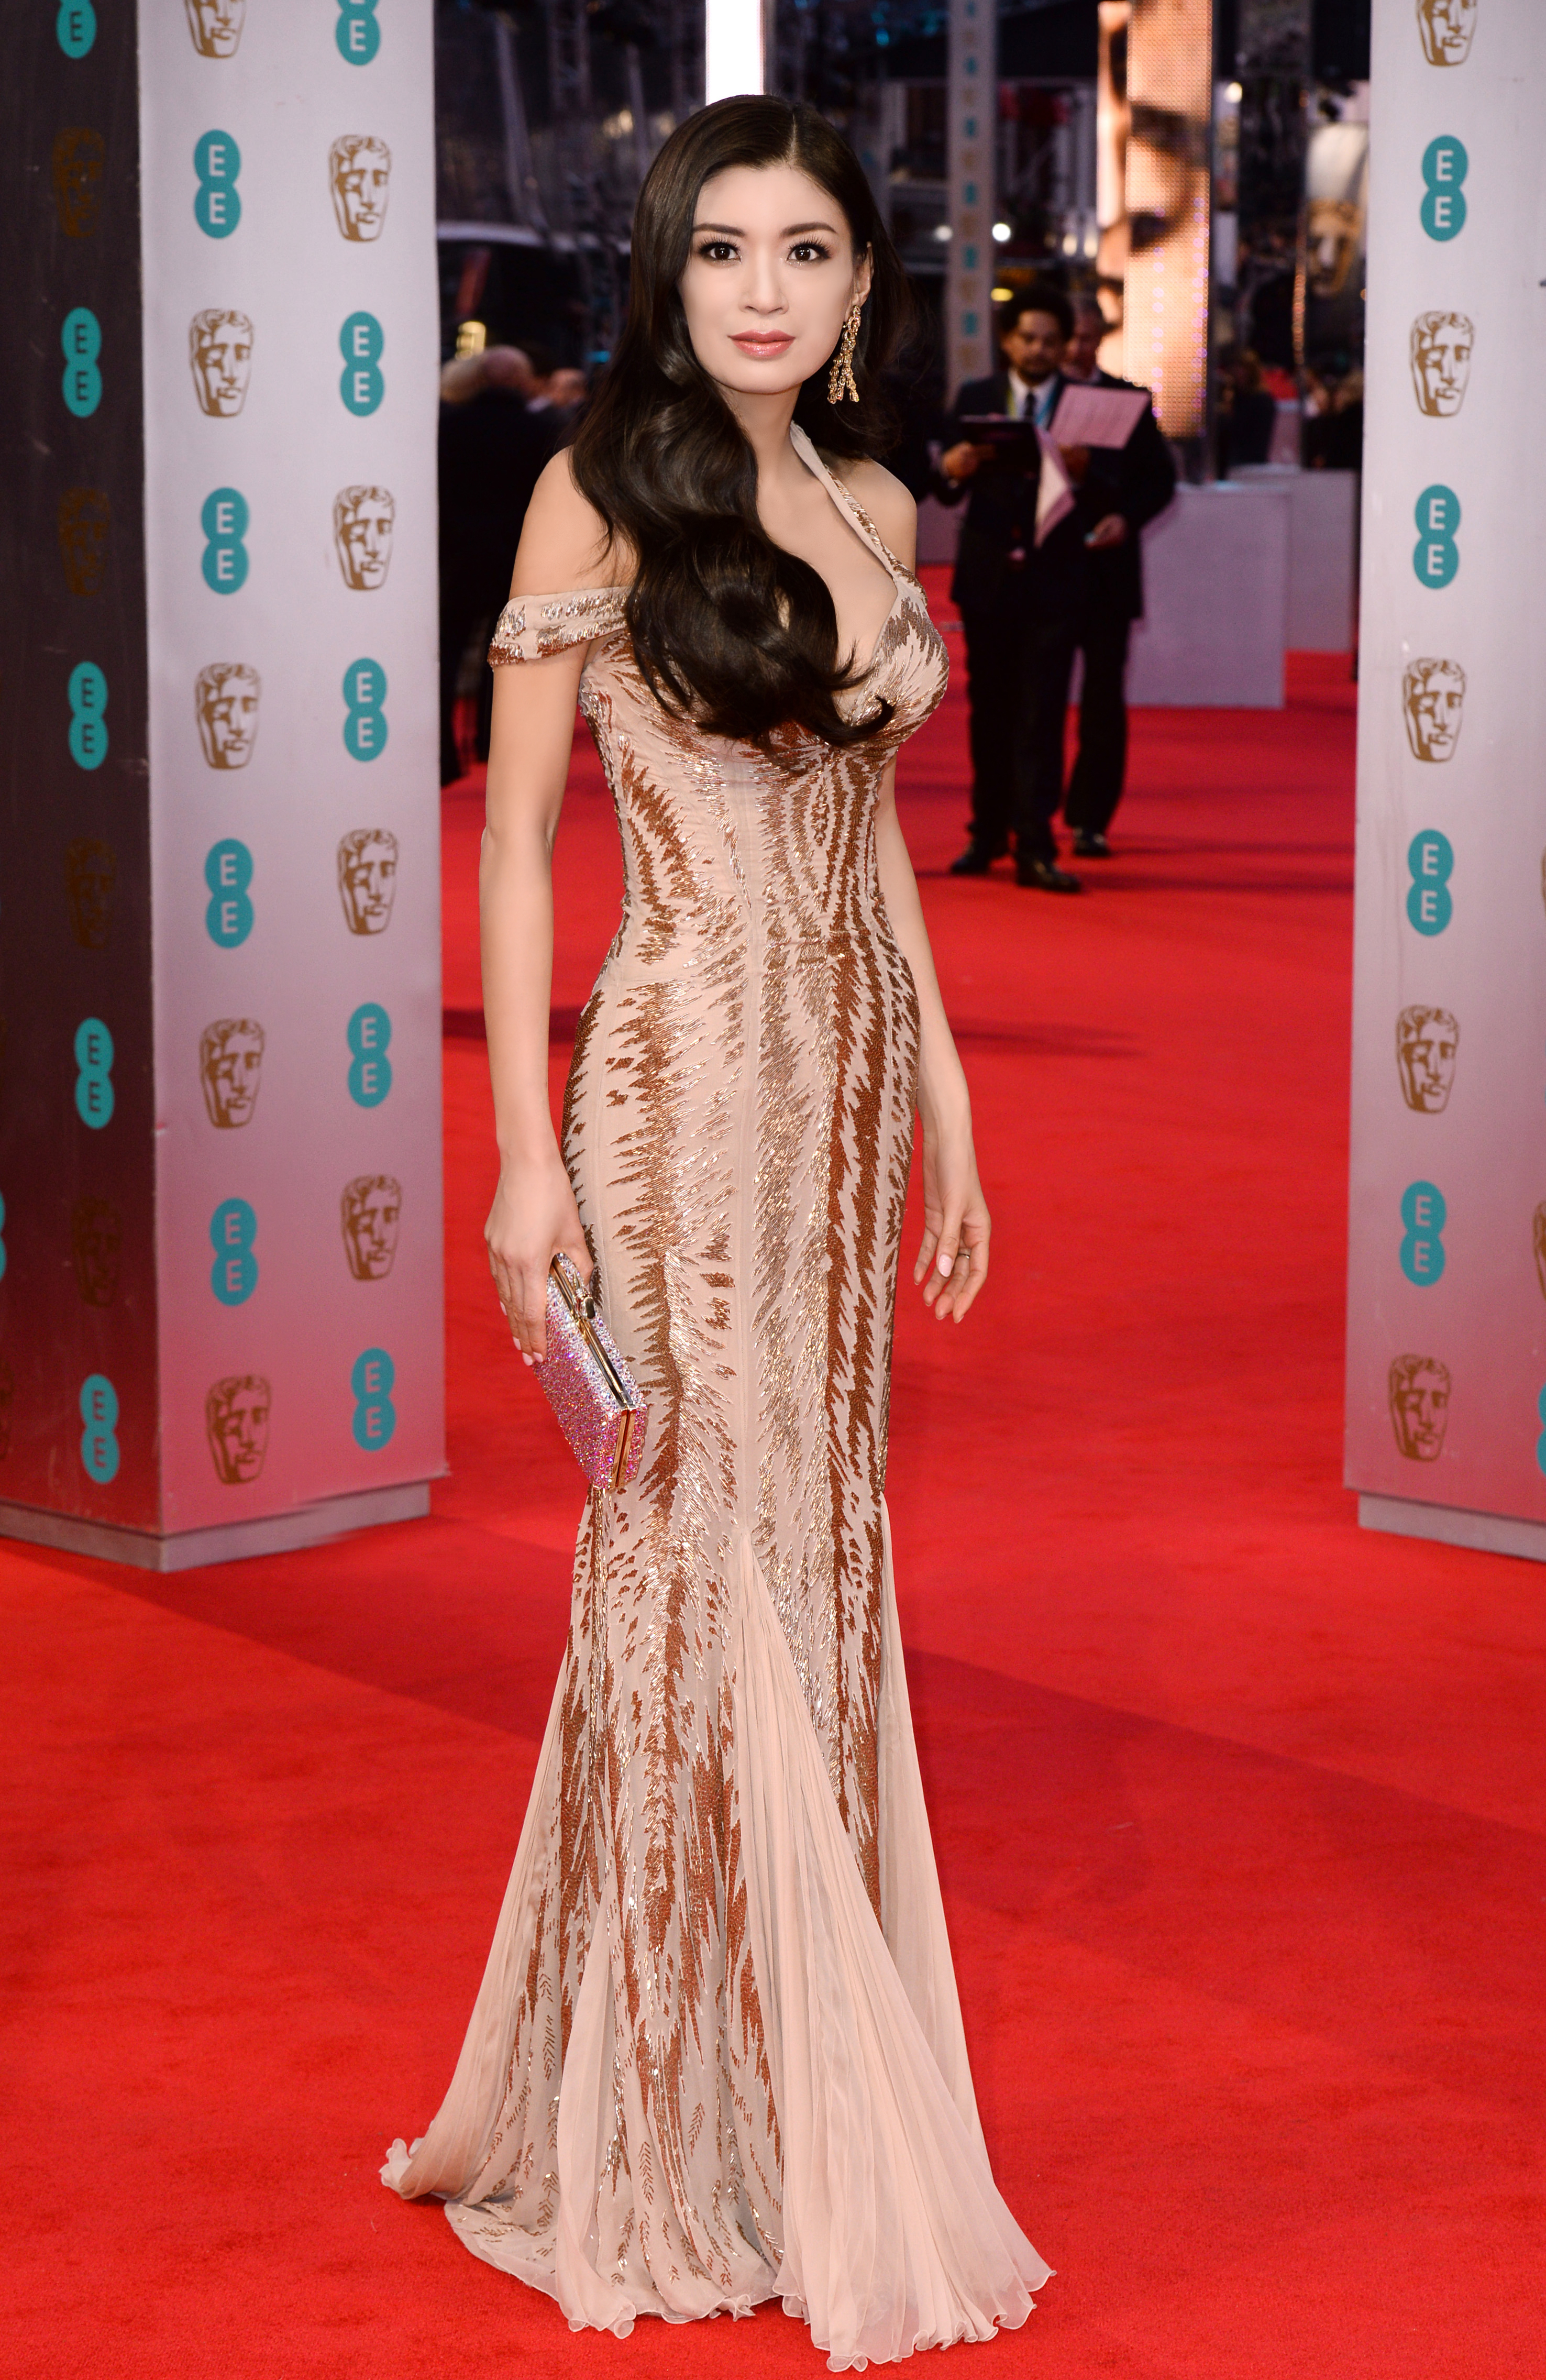 Rebecca Wang, attends the 67th Annual BAFTA Film Awards Ceremony. (Photo: Business Wire)